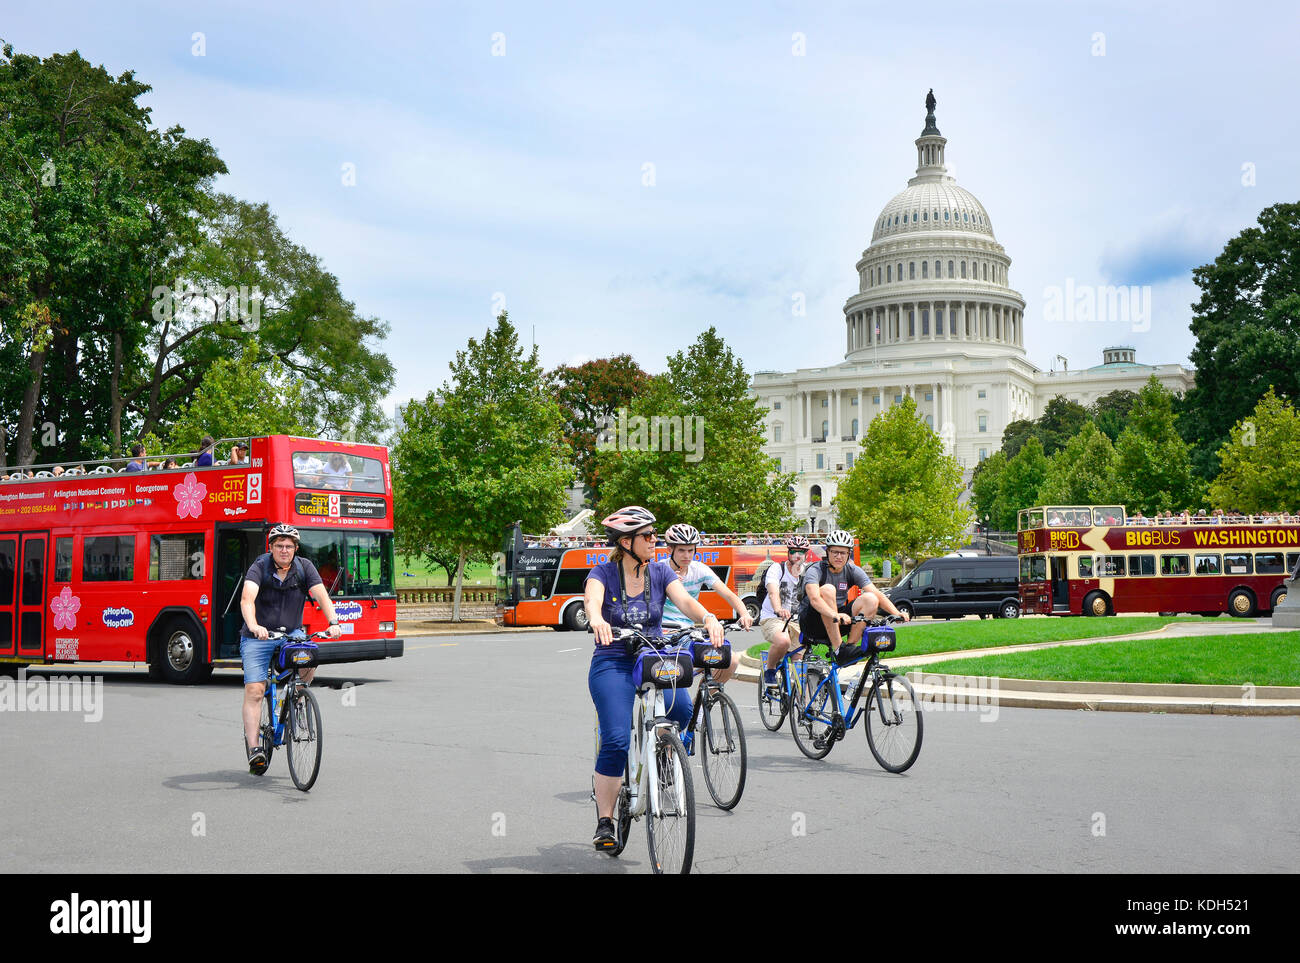 Bicycle tourists along with sightseeing buses circle in